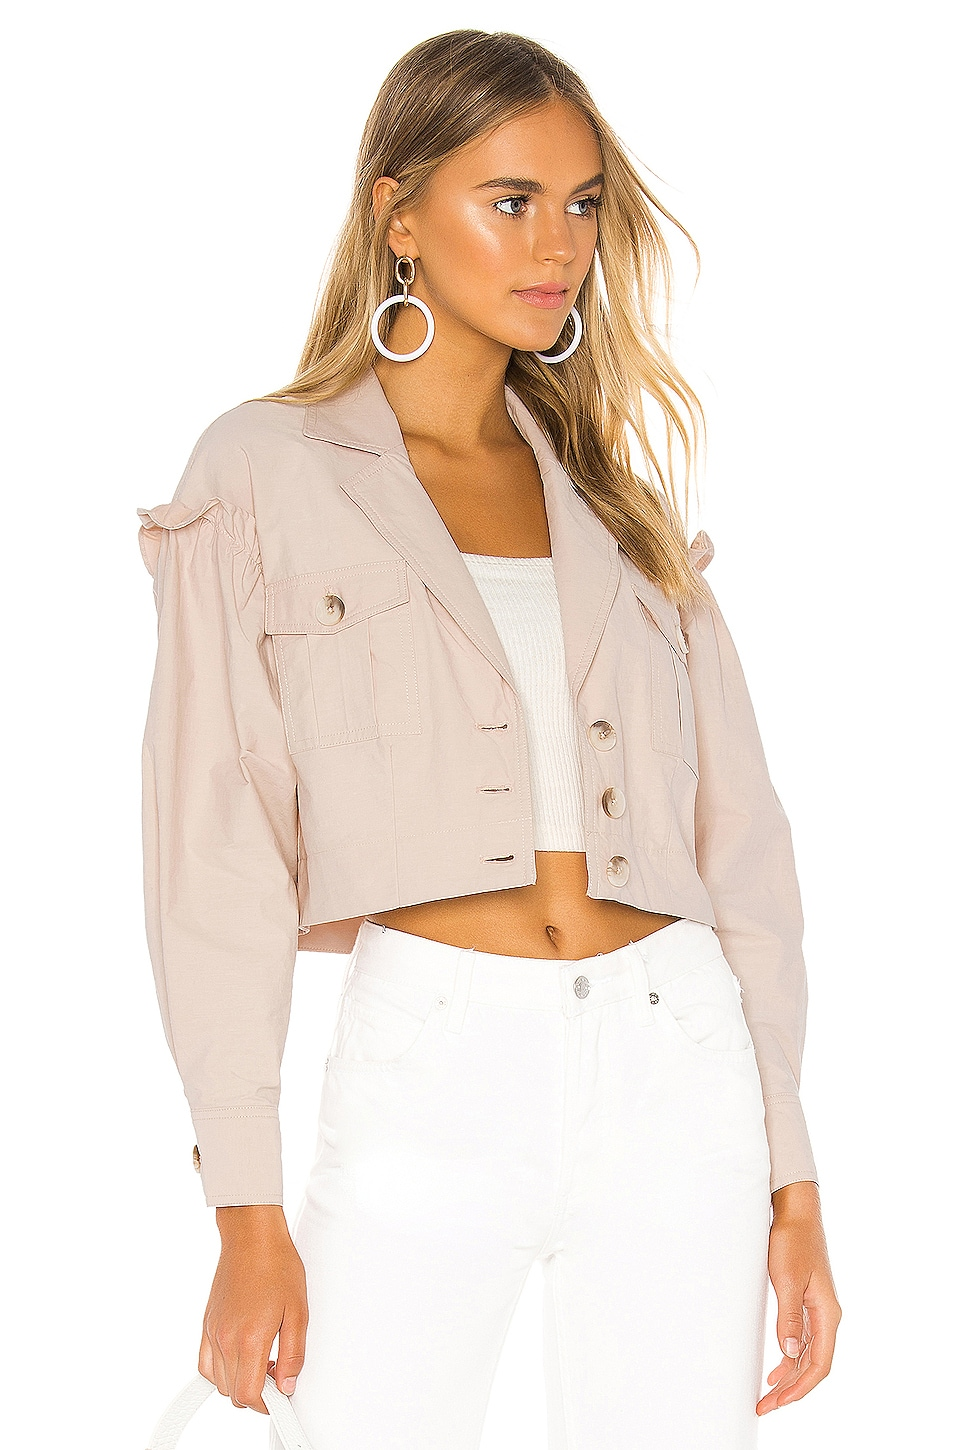 L'Academie The Dany Jacket in Blush